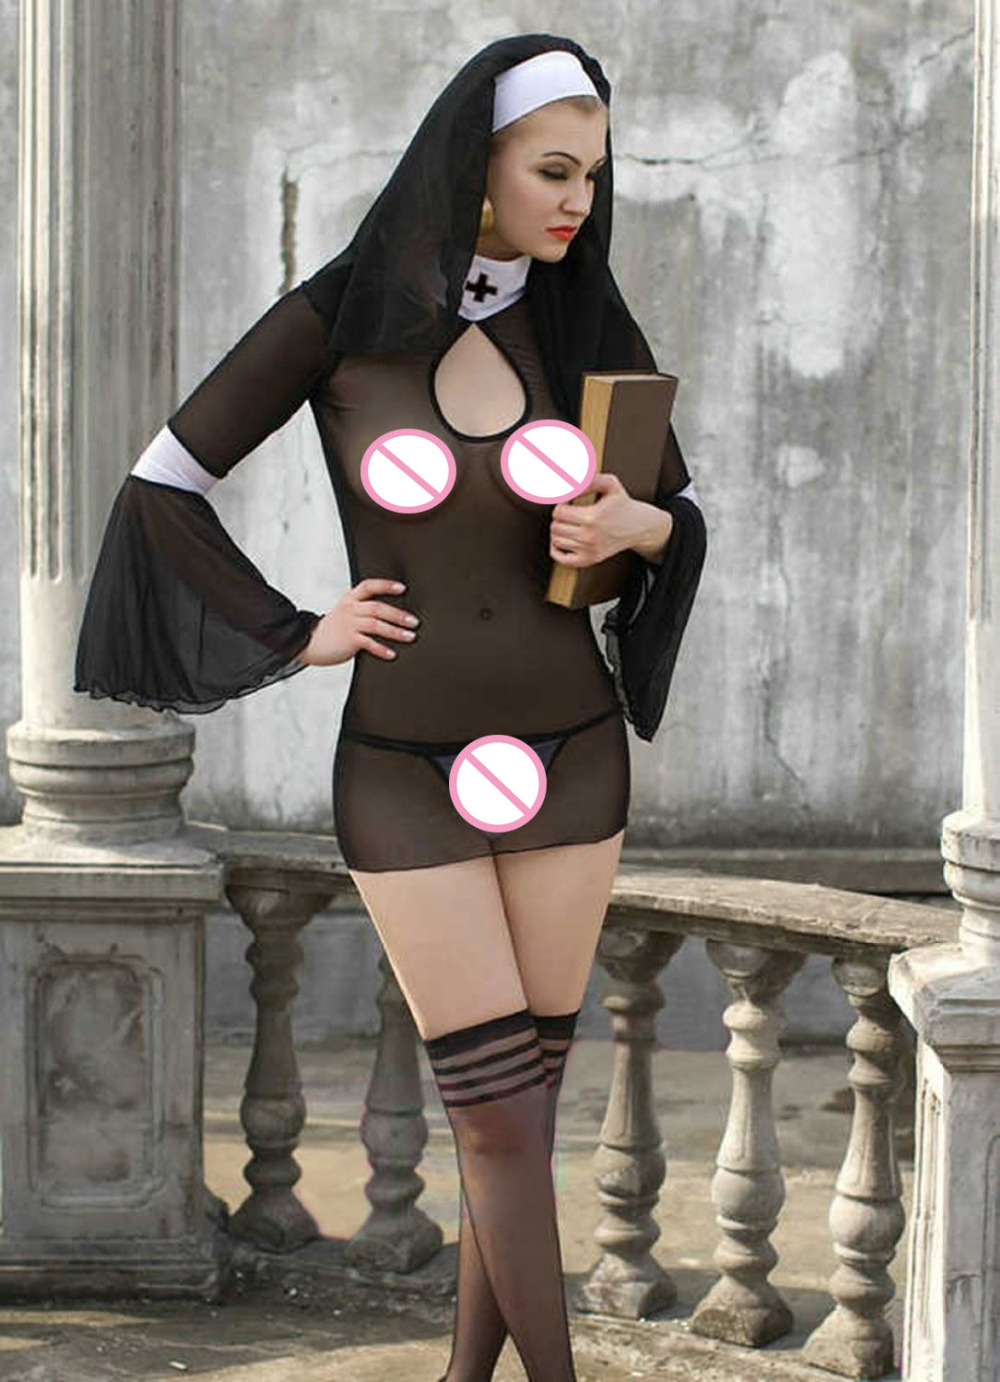 Sexy Women Erotic Underwear Perspective Dress Female Missionary Uniform Temptation Nun Cosplay Costume